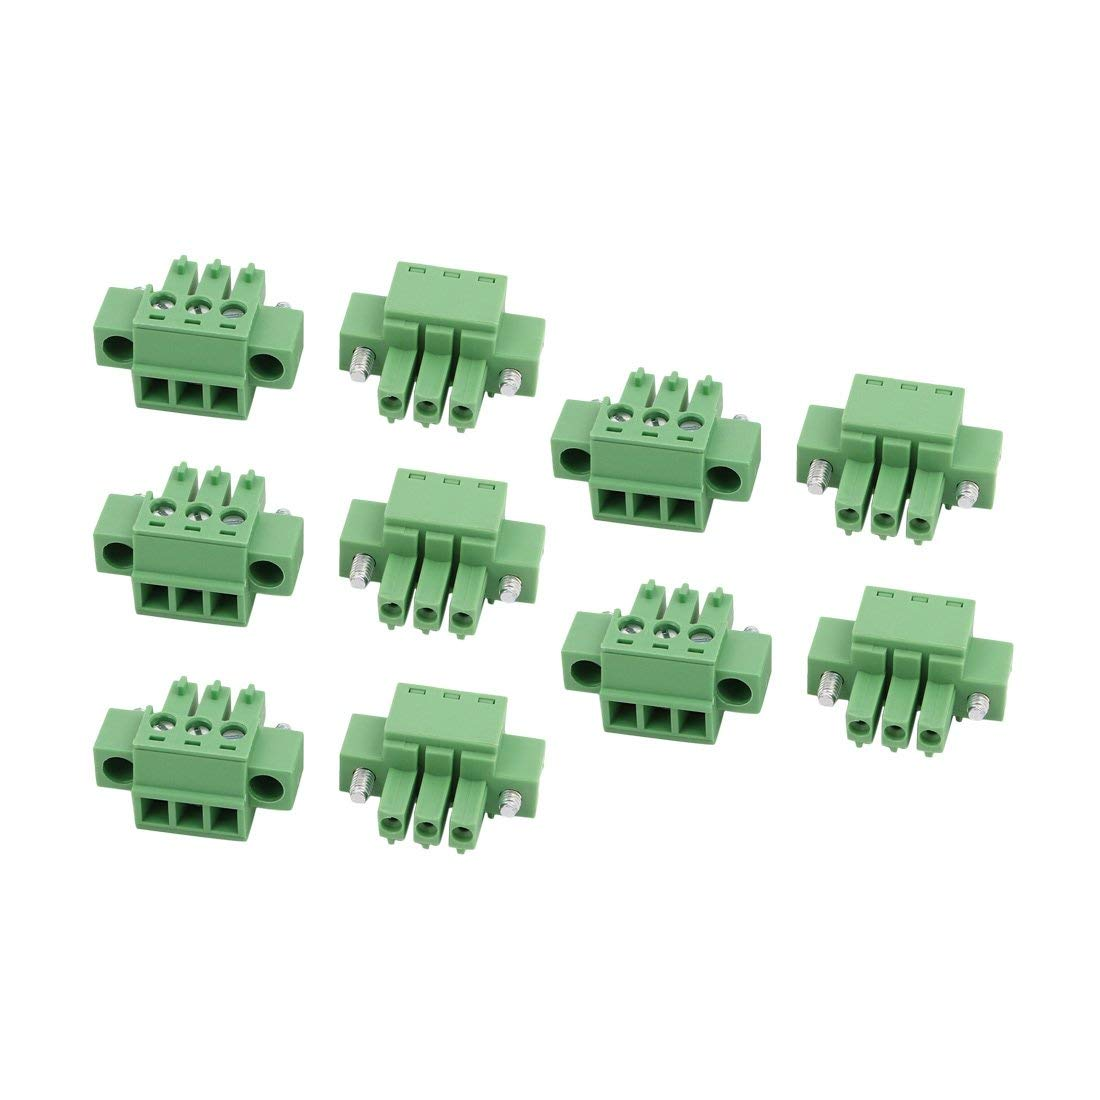 uxcell 10Pcs AC 300V 8A 3.81mm Pitch 3P Terminal Block Wire Connection for PCB Mounting